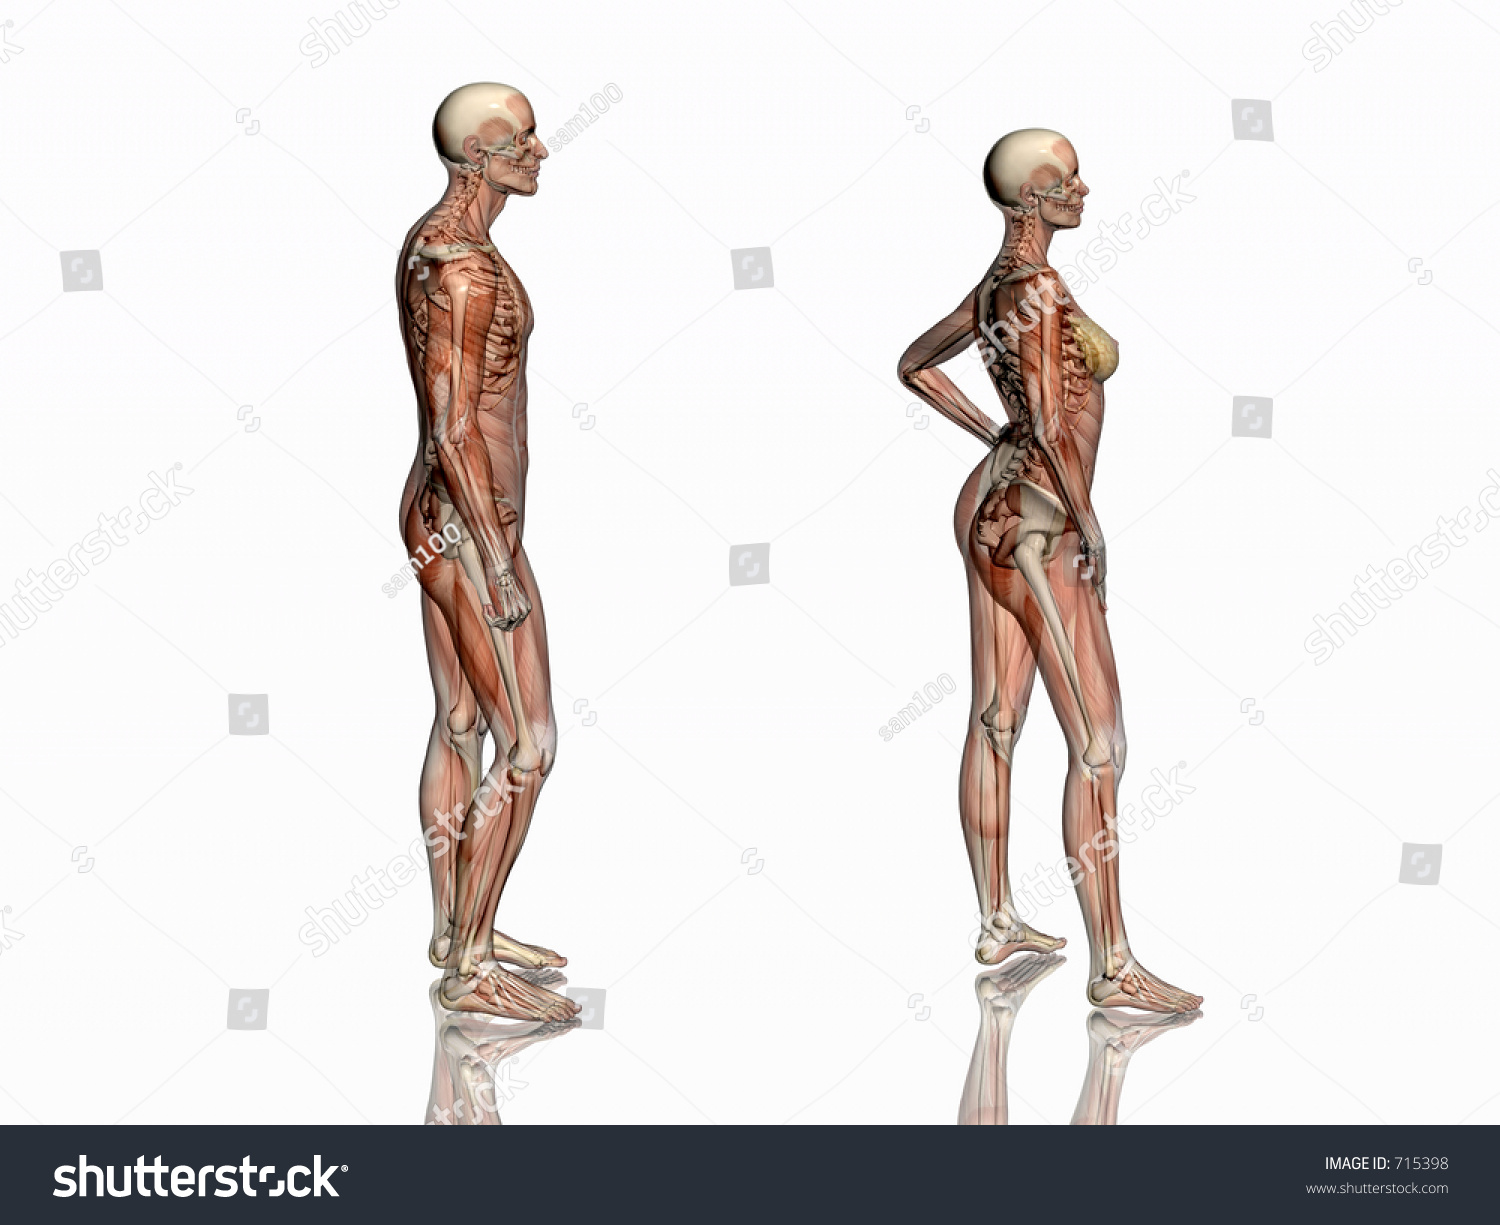 Anatomically Correct Medical Model Human Body Stock Illustration